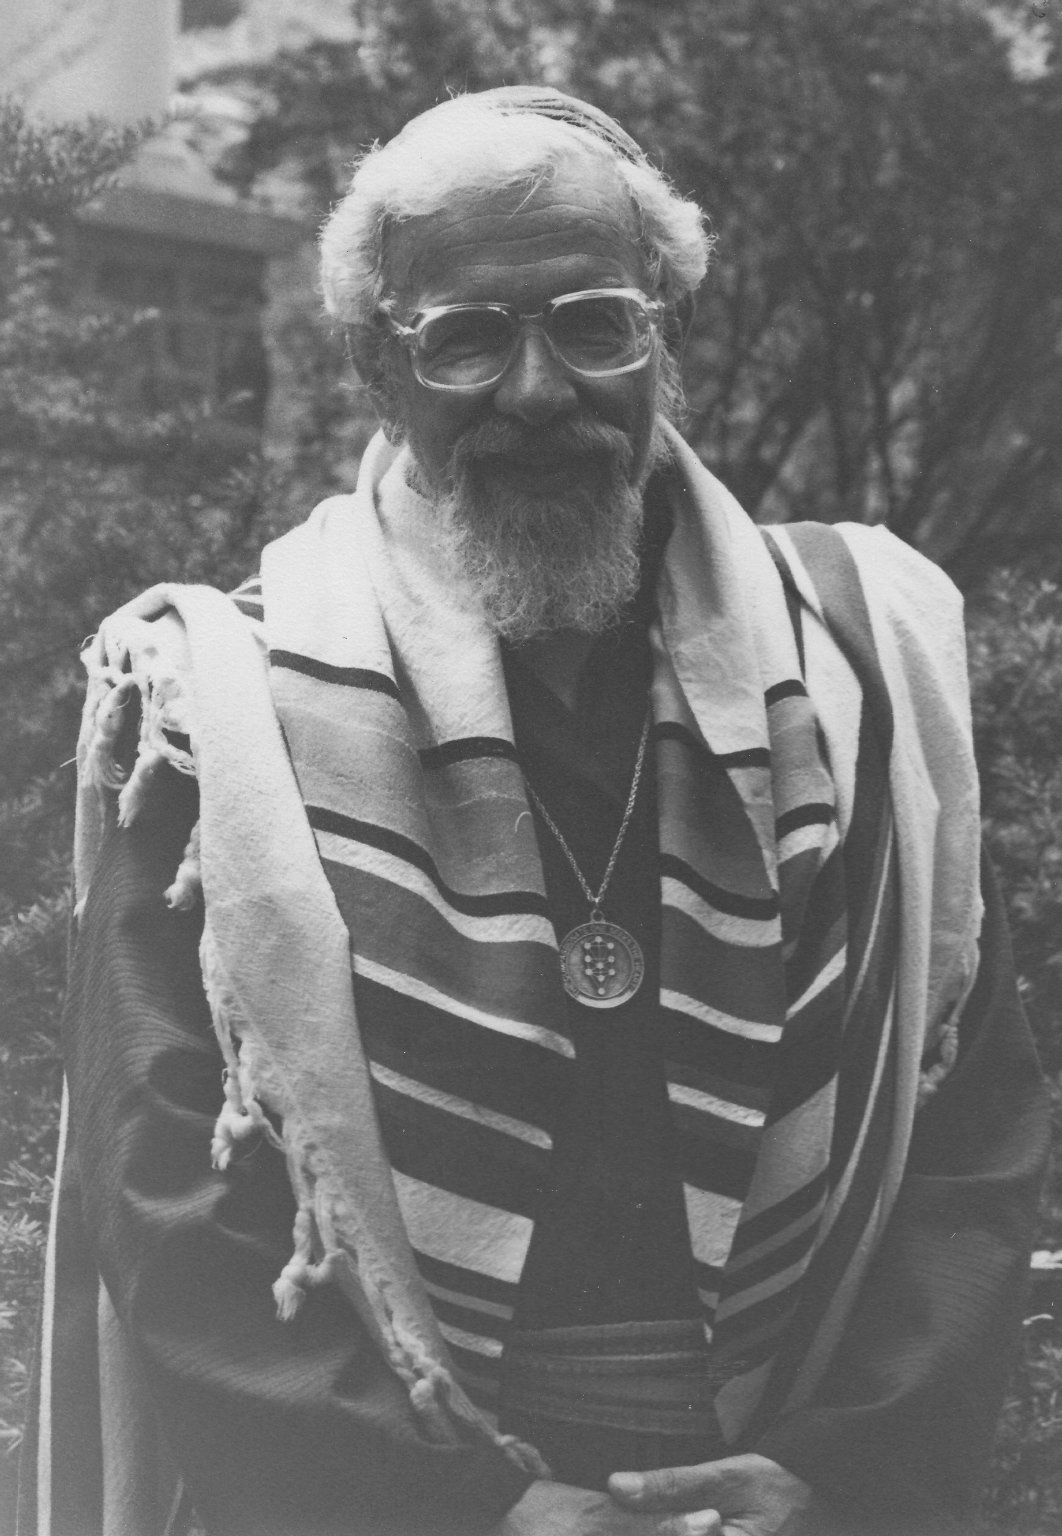 Rabbi Zalman Schachter-Shalomi in a robe with a tallit and B'nai Or medallion, ca. 1980s.